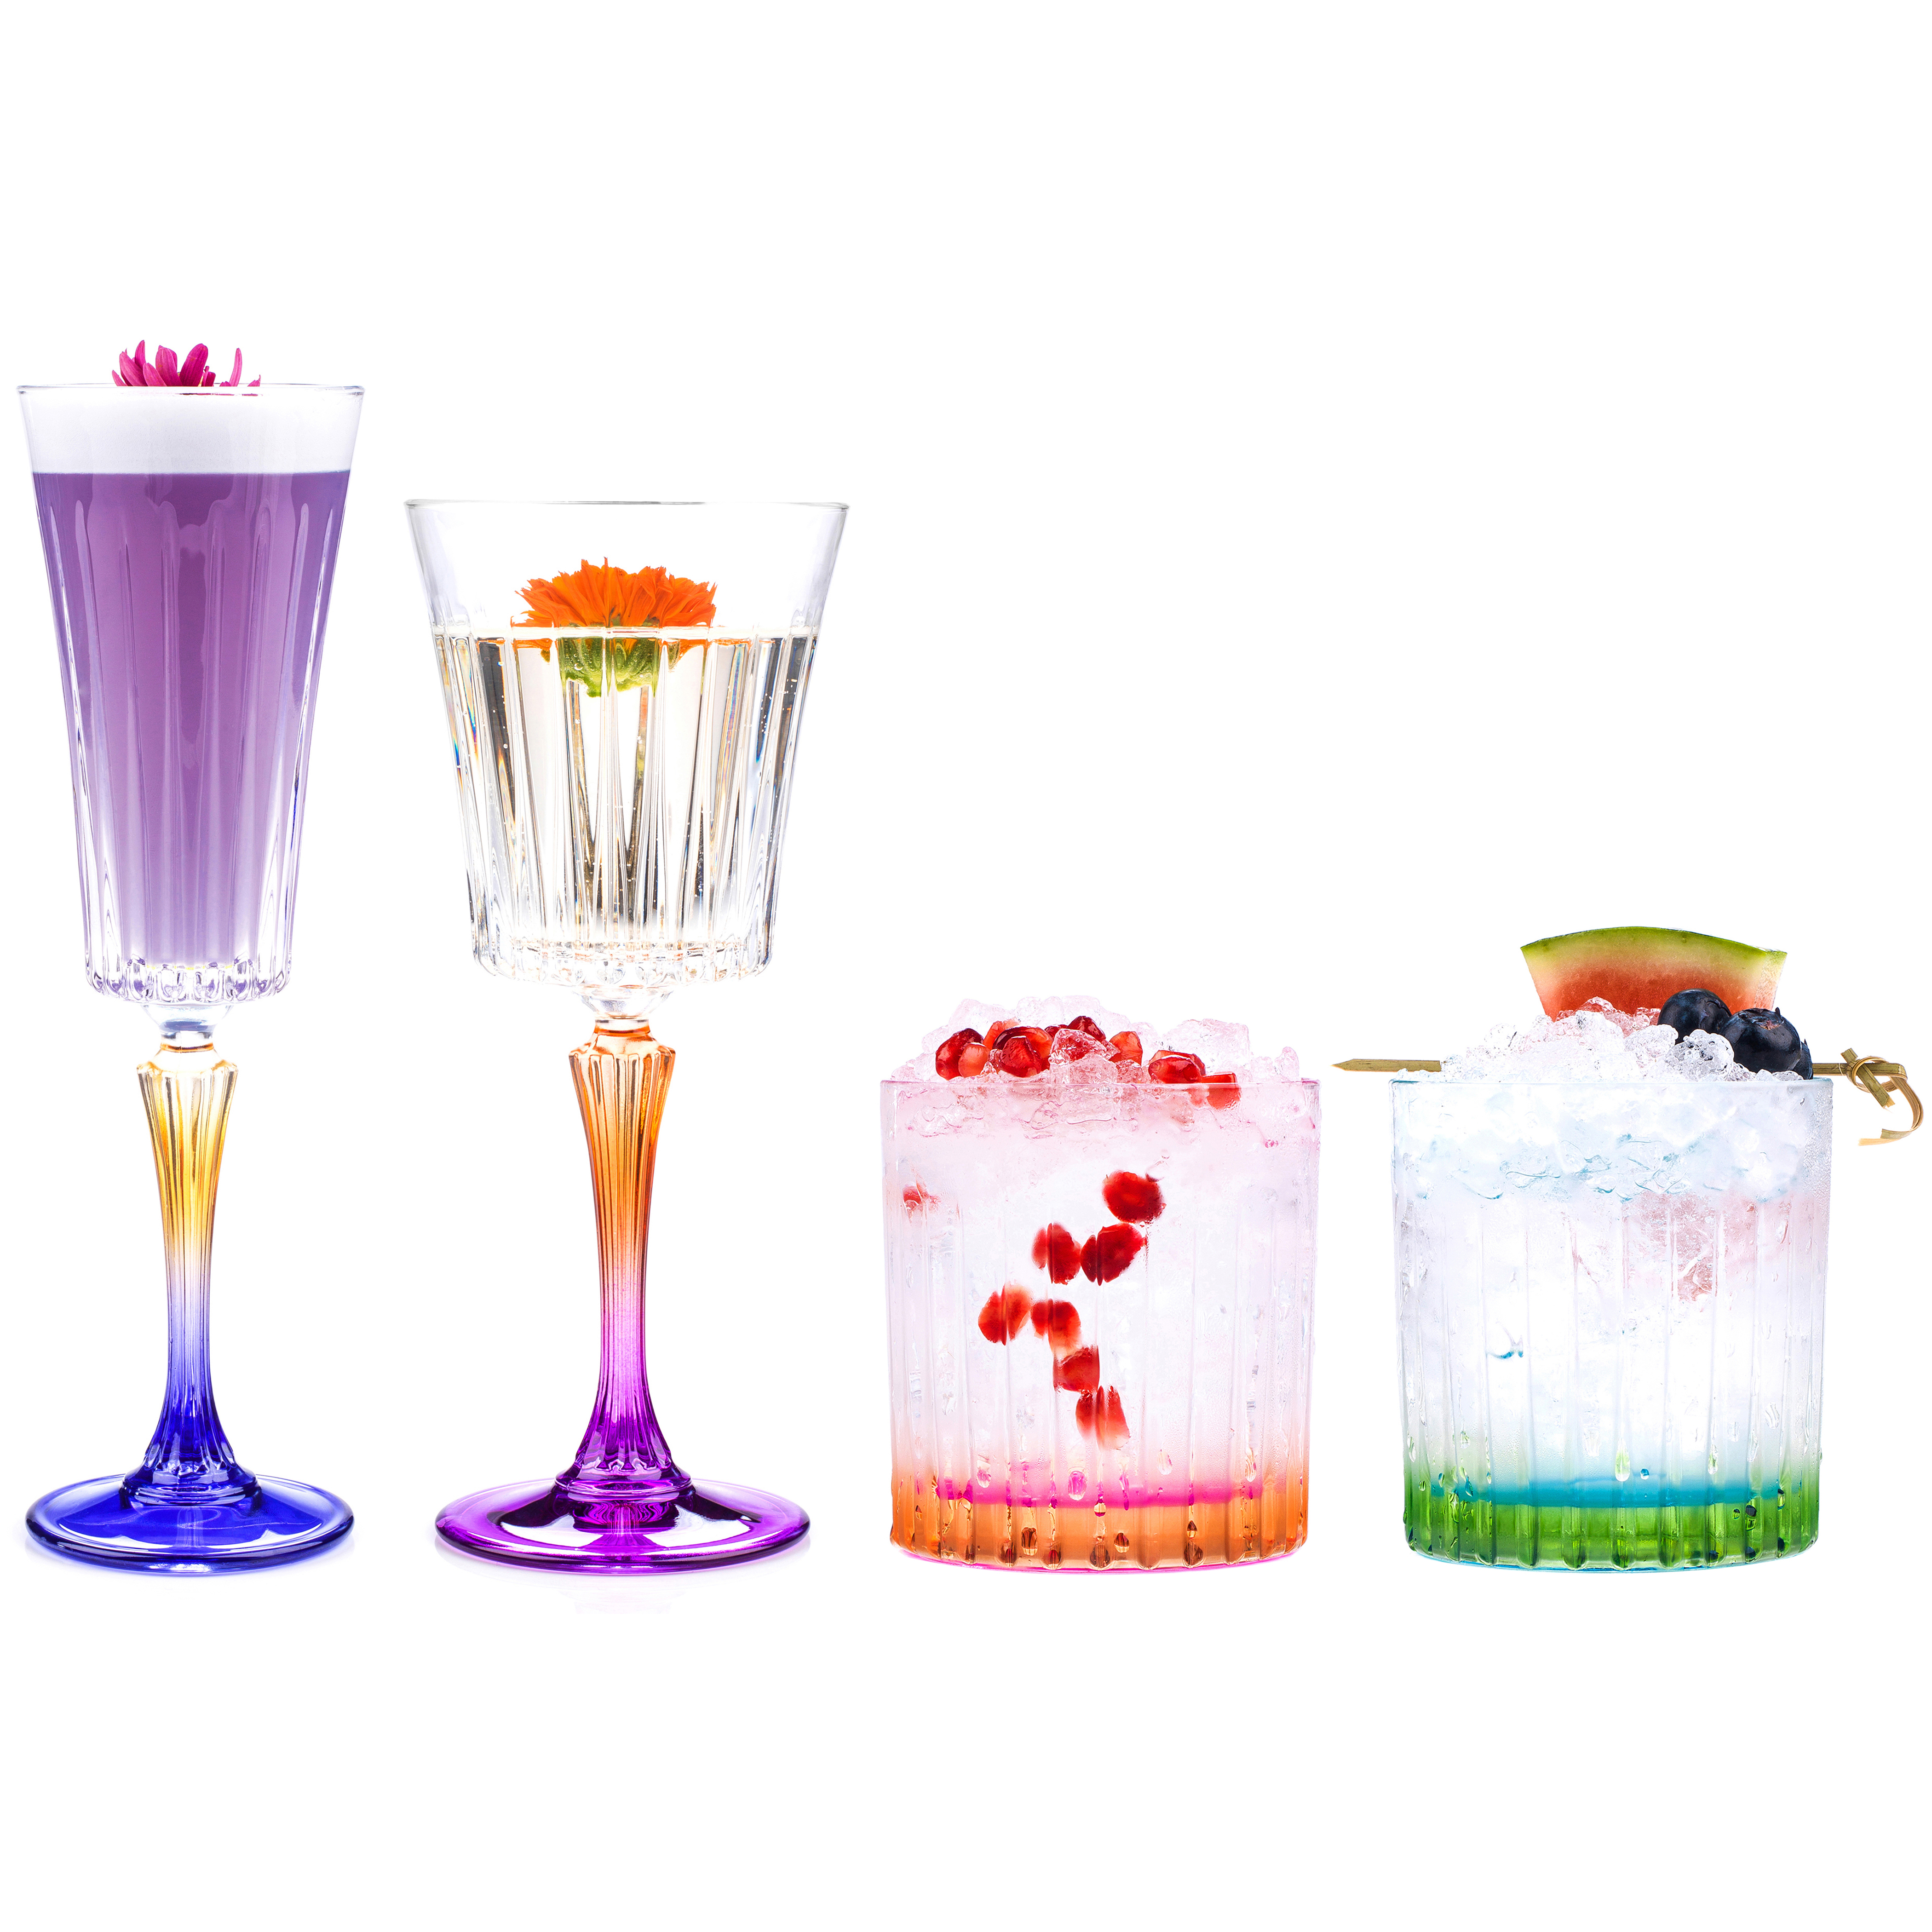 Rcr Combo 3670 Gipsy Luxion Crystal Drinkware Collection 24 Piece No1brands4you